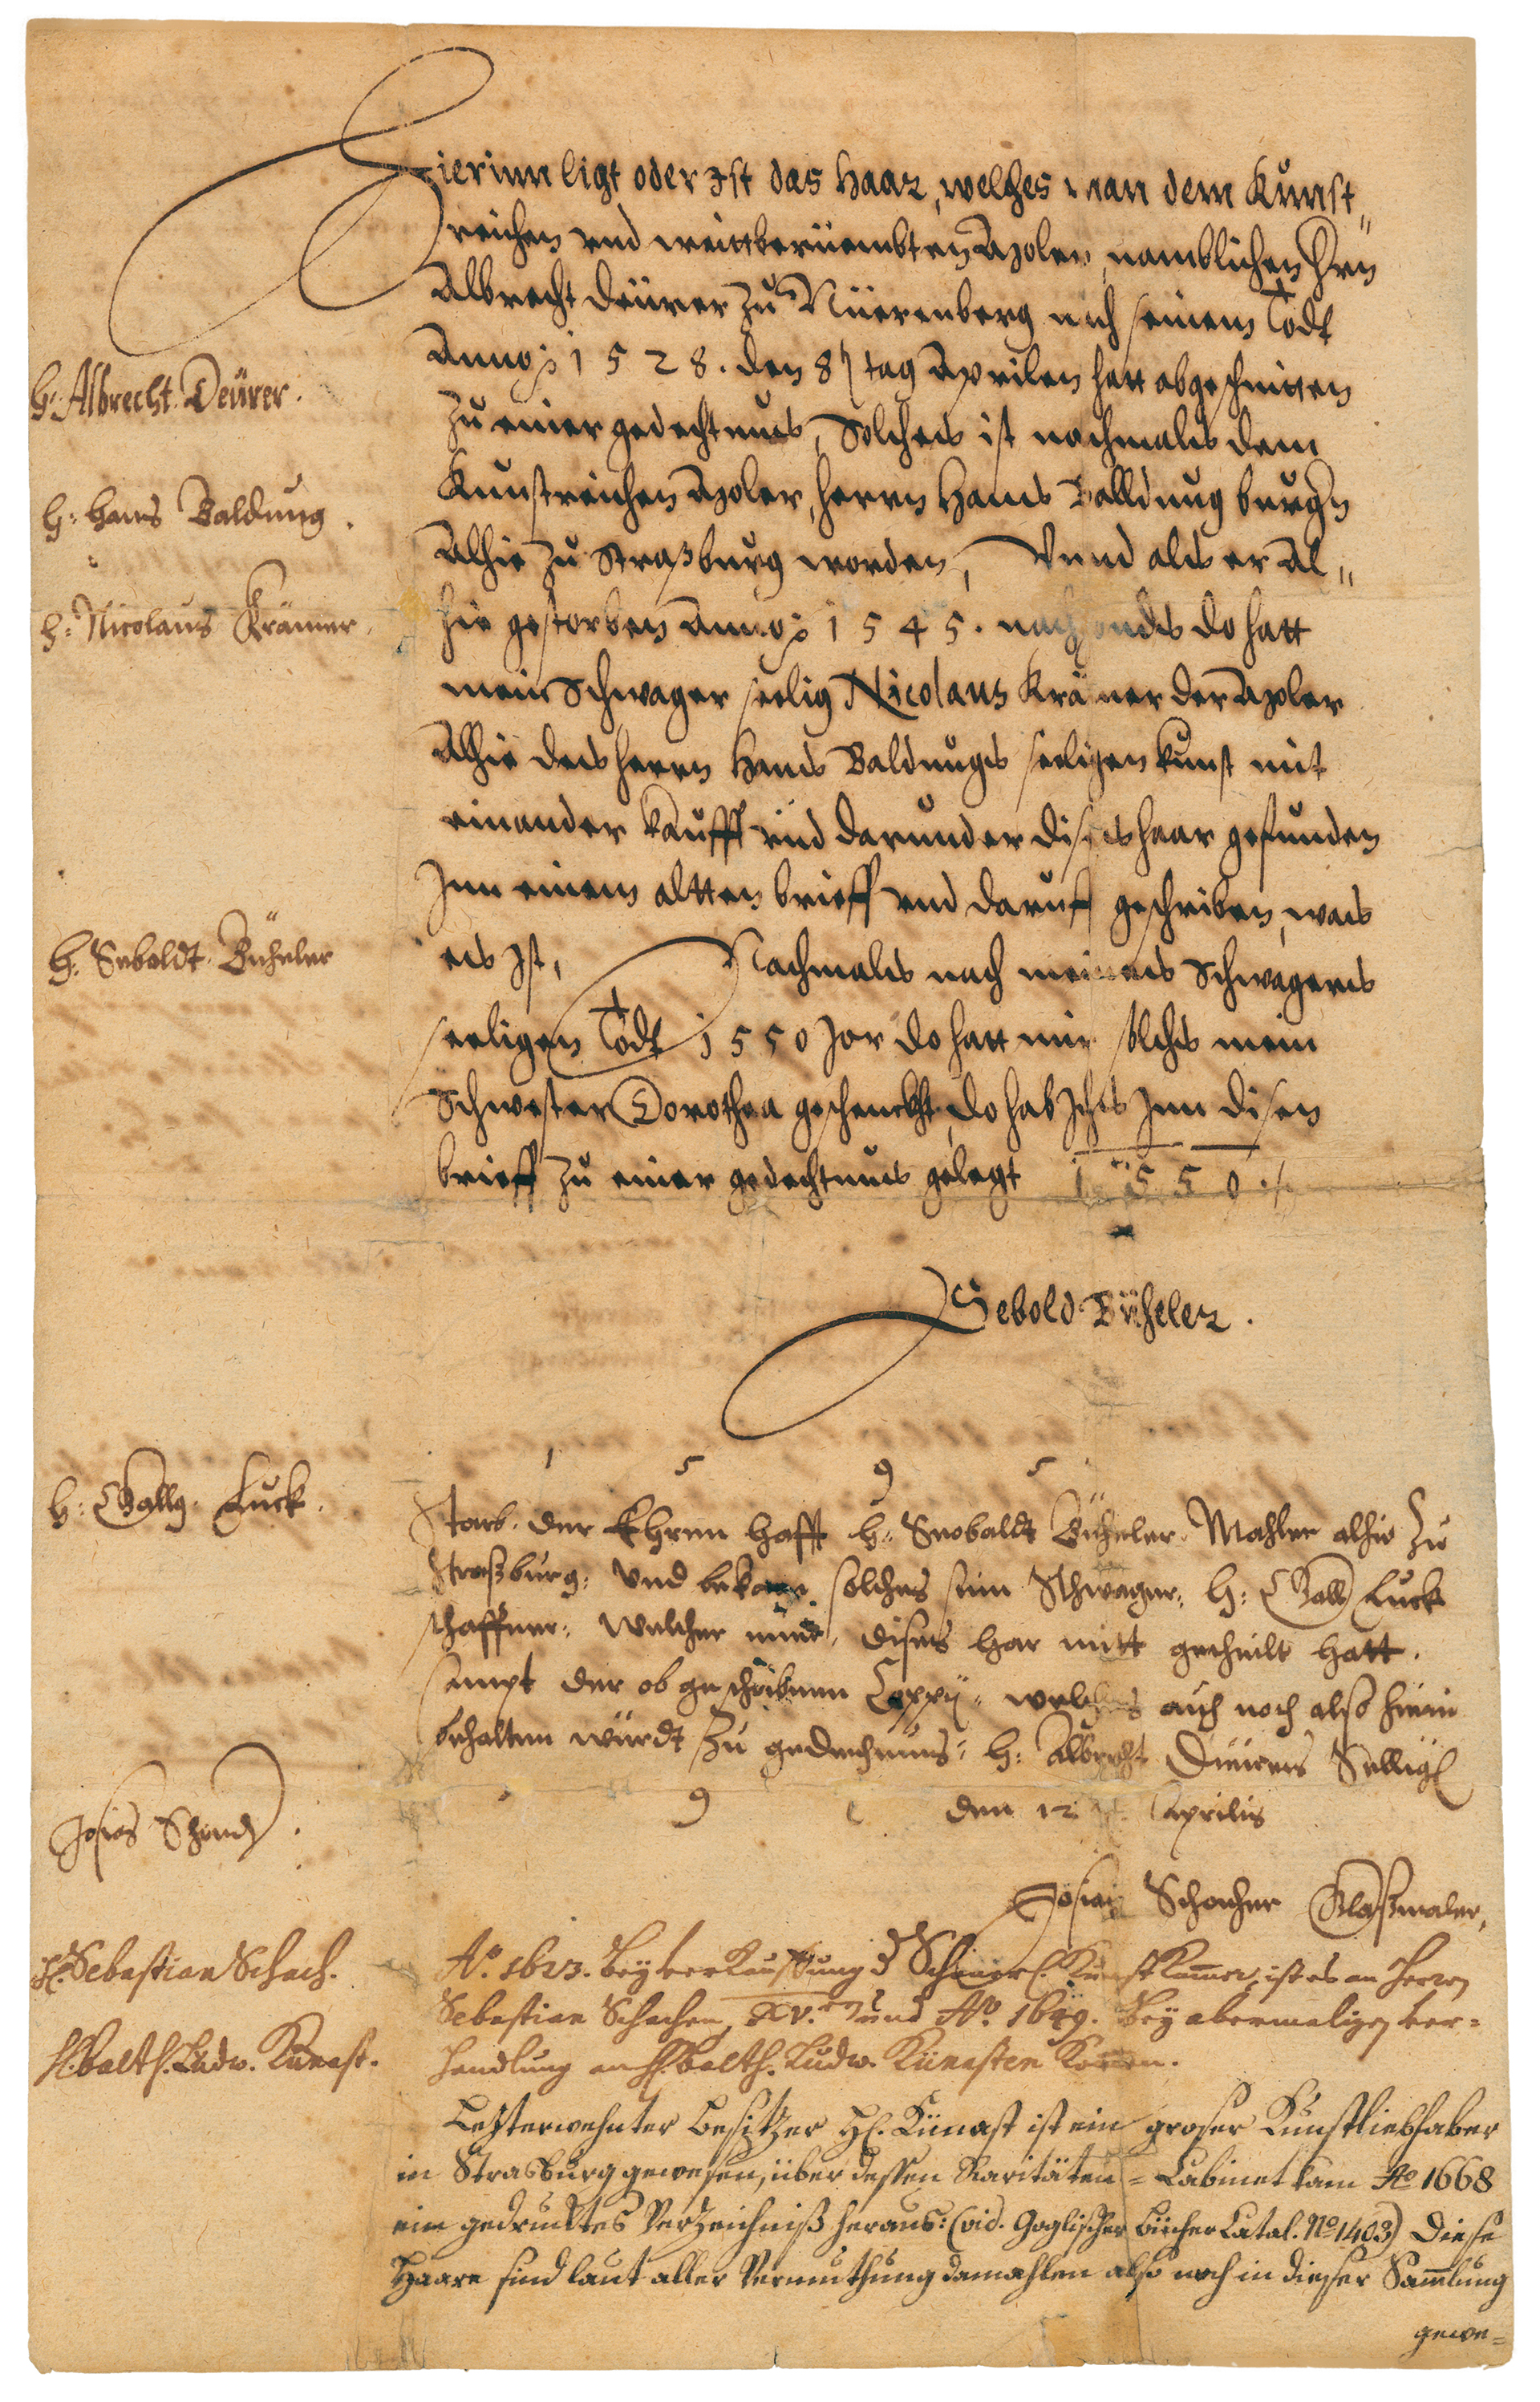 Image of Sebald Büheler: Document describing the provenance of Dürer's lock of hair, 1559–1871 (mounting by Edward von Steinles, about 1871), borrowed from Gemäldegalerie der Akademie der Bildenden Künste Vienna.